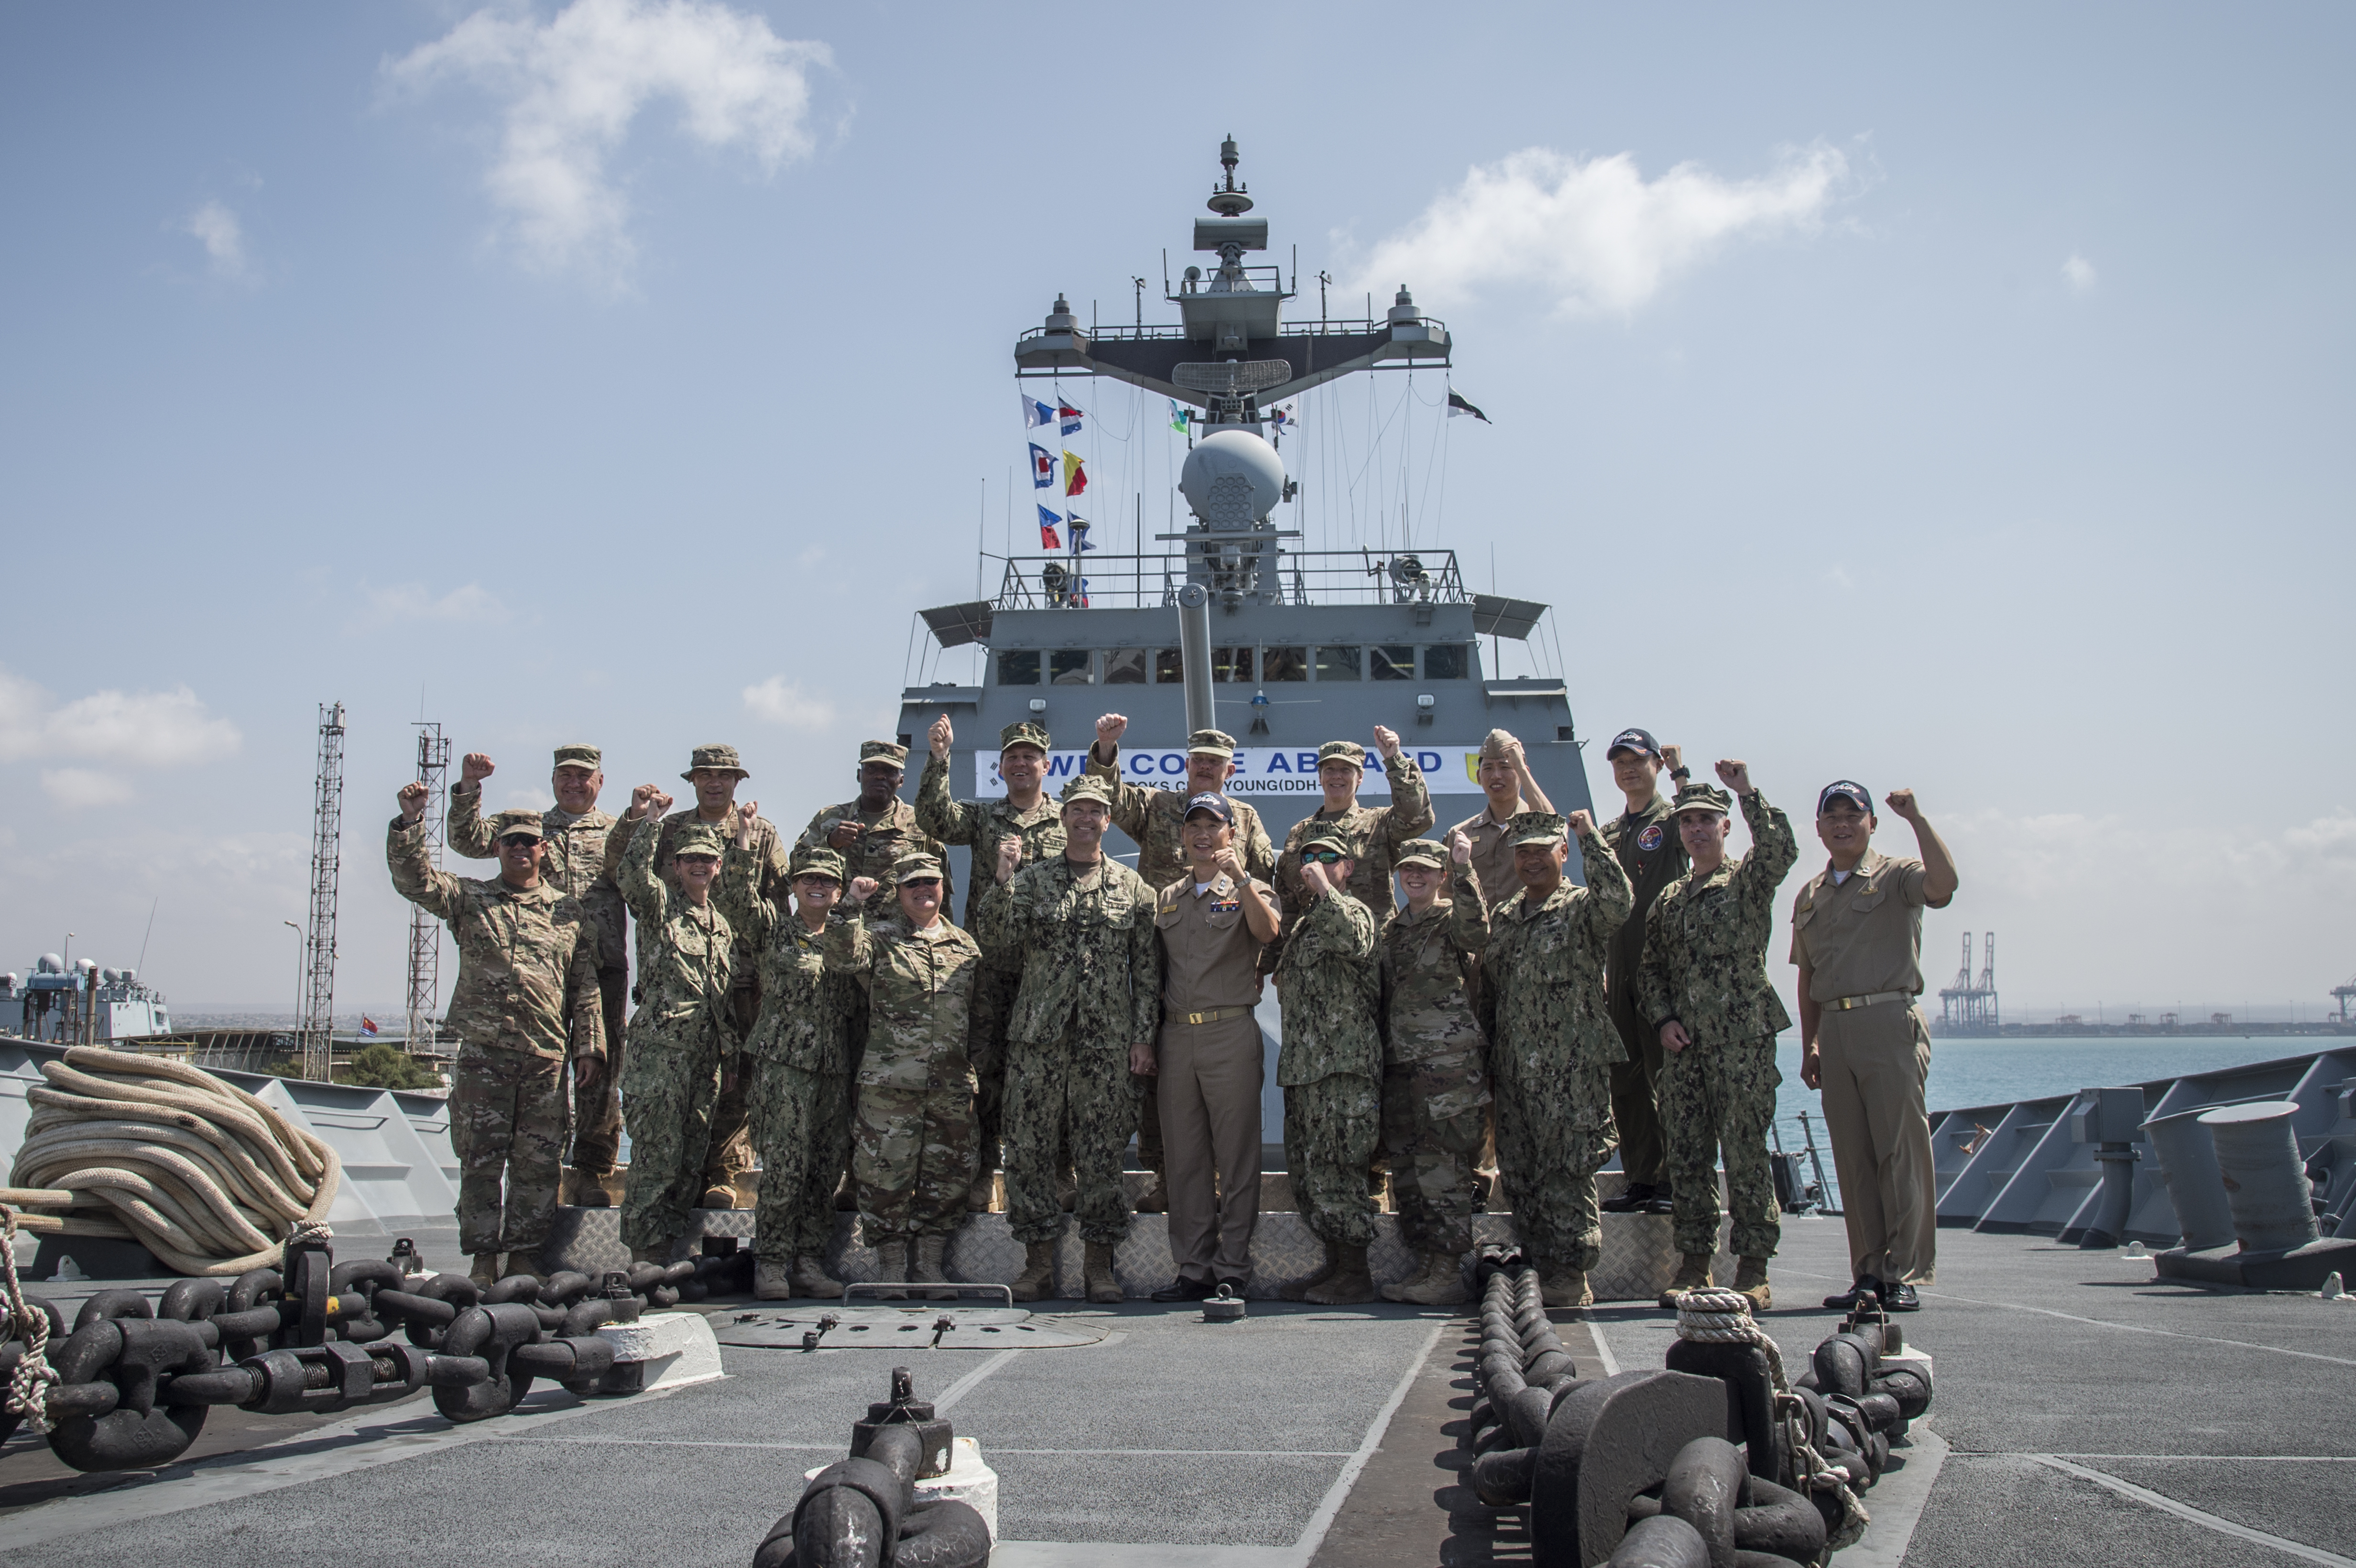 "Combined Joint Task Force-Horn of Africa joined members of Camp Lemonnier, Djibouti, pose for a group photo on the bow of the ROKS Choi Young DDH-981, May 8, 2017, a Chungmugong Yi Sun-sin-class destroyer in the South Korean navy. The group shouted a long-standing U.S.-Korea partnership mantra in unison, ""We go…together!,"" pumping a fist towards the sky. (U.S. Air National Guard photo by Tech. Sgt. Joe Harwood)"